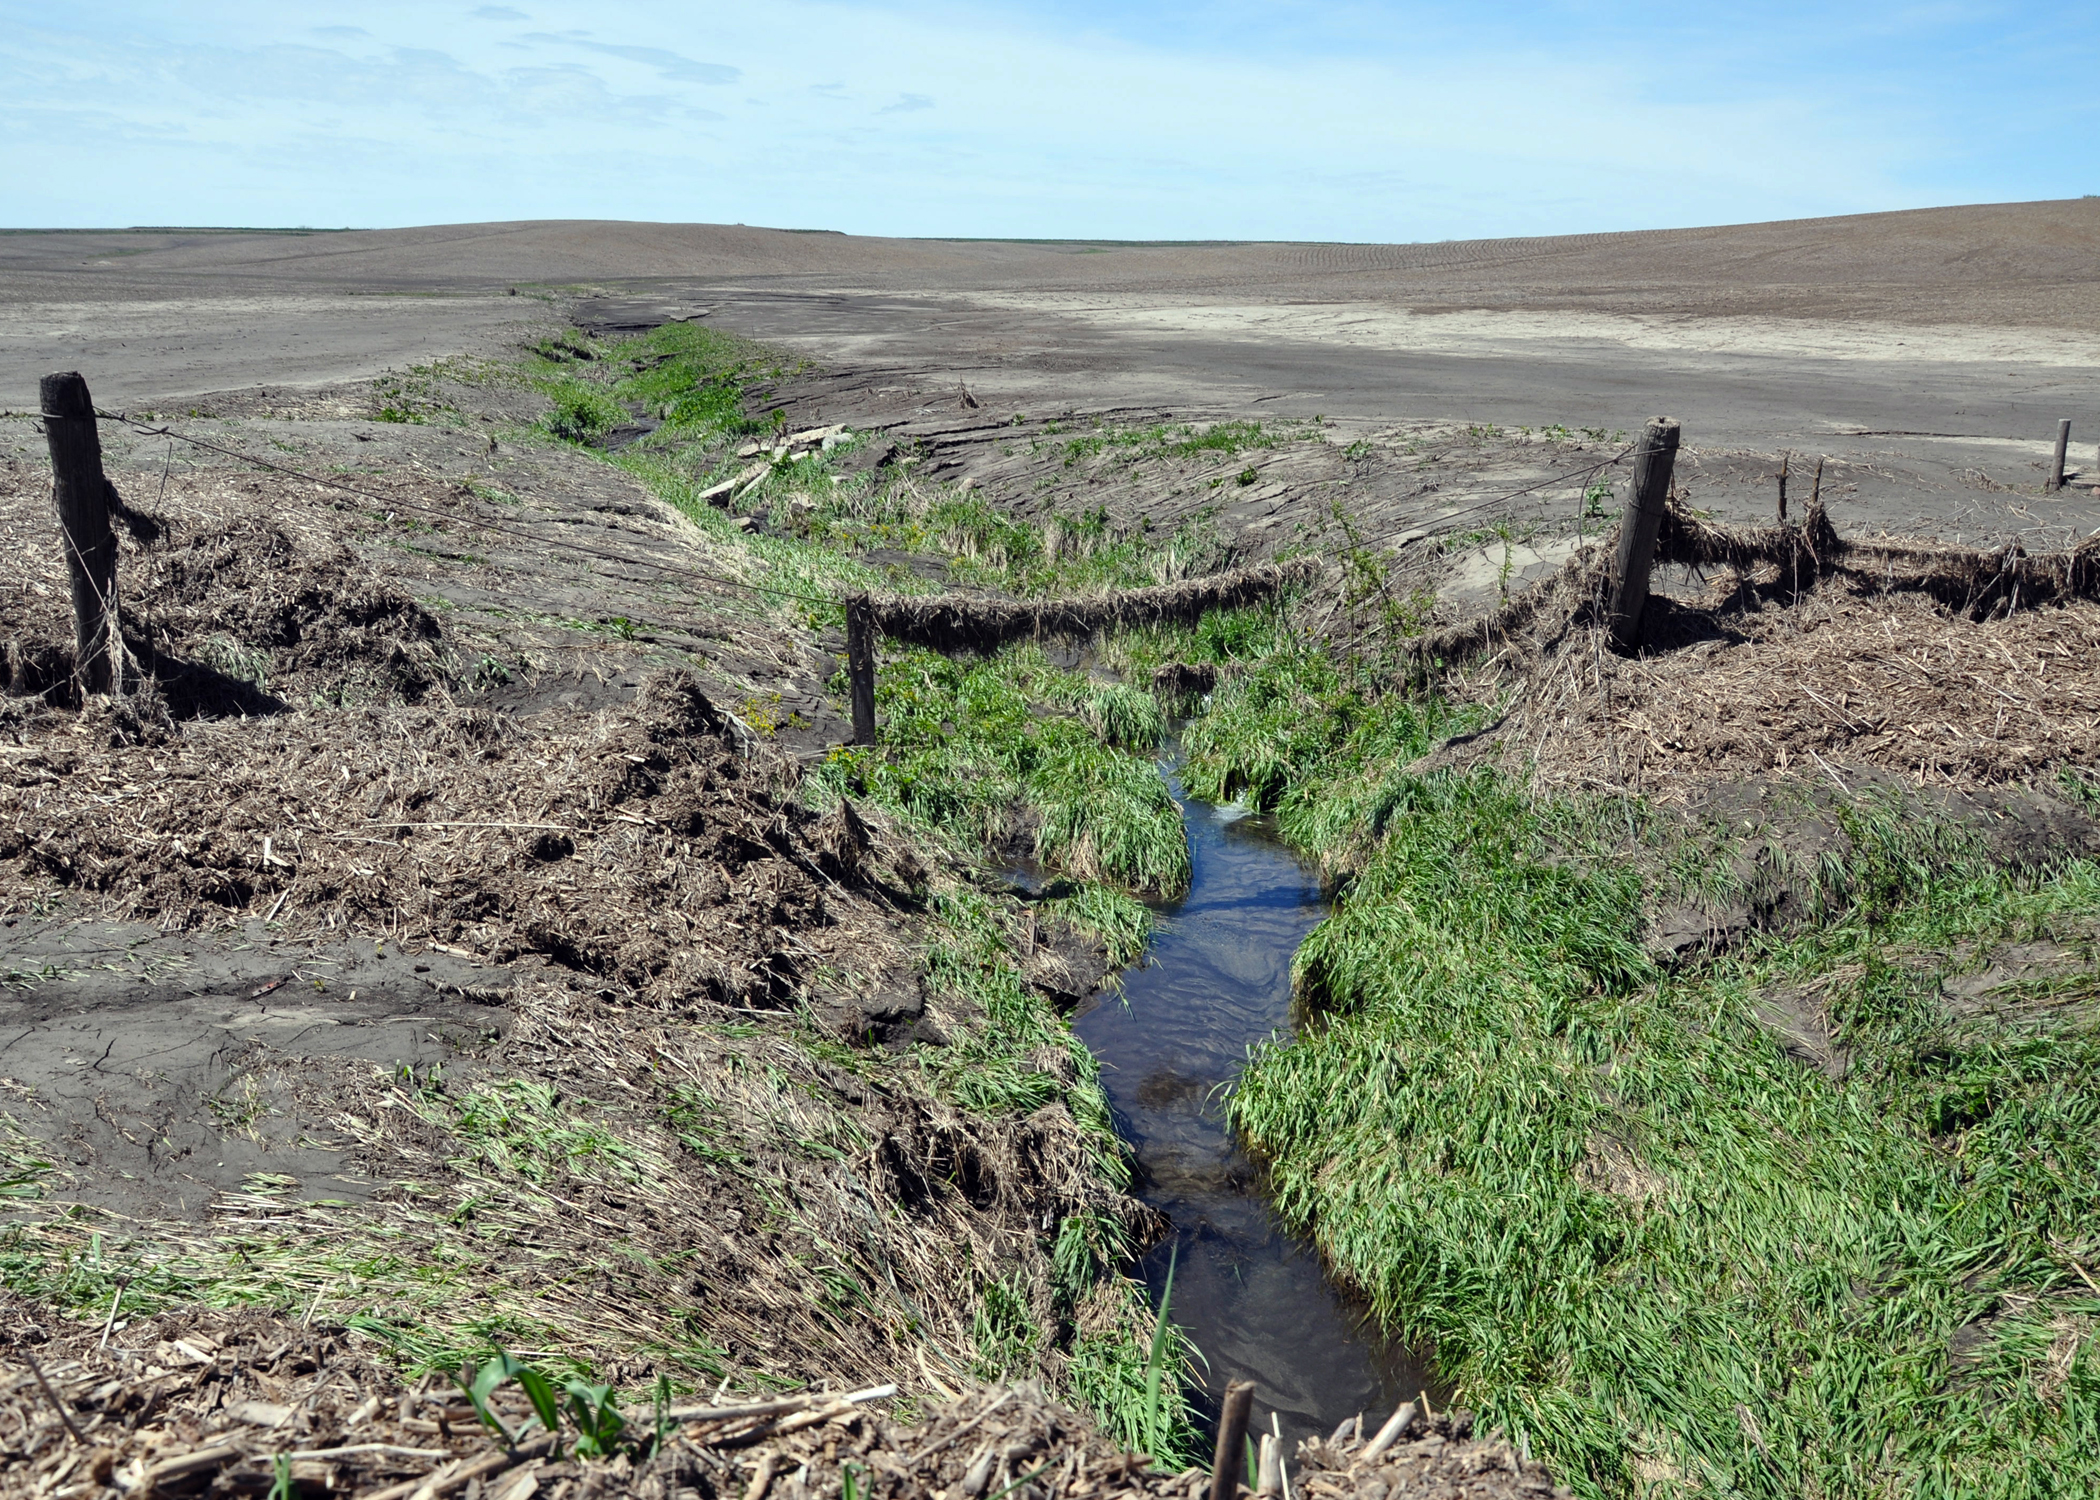 Soil erosion has created an enormous gully and damaged a fence in western Iowa.